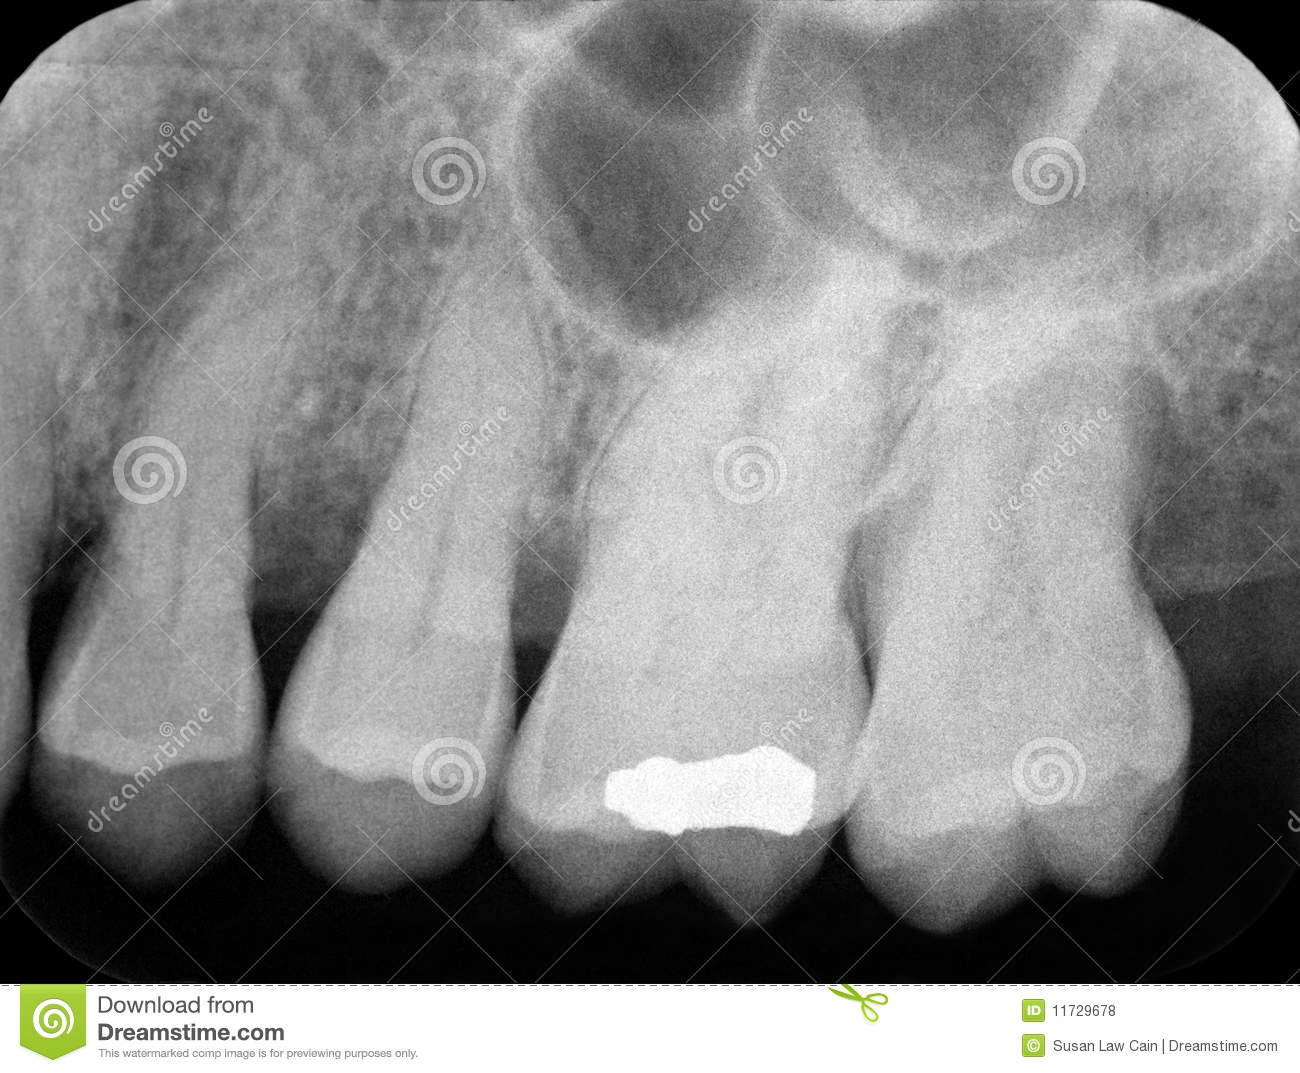 Periodontal Ray Caries Periapical Of Teeth